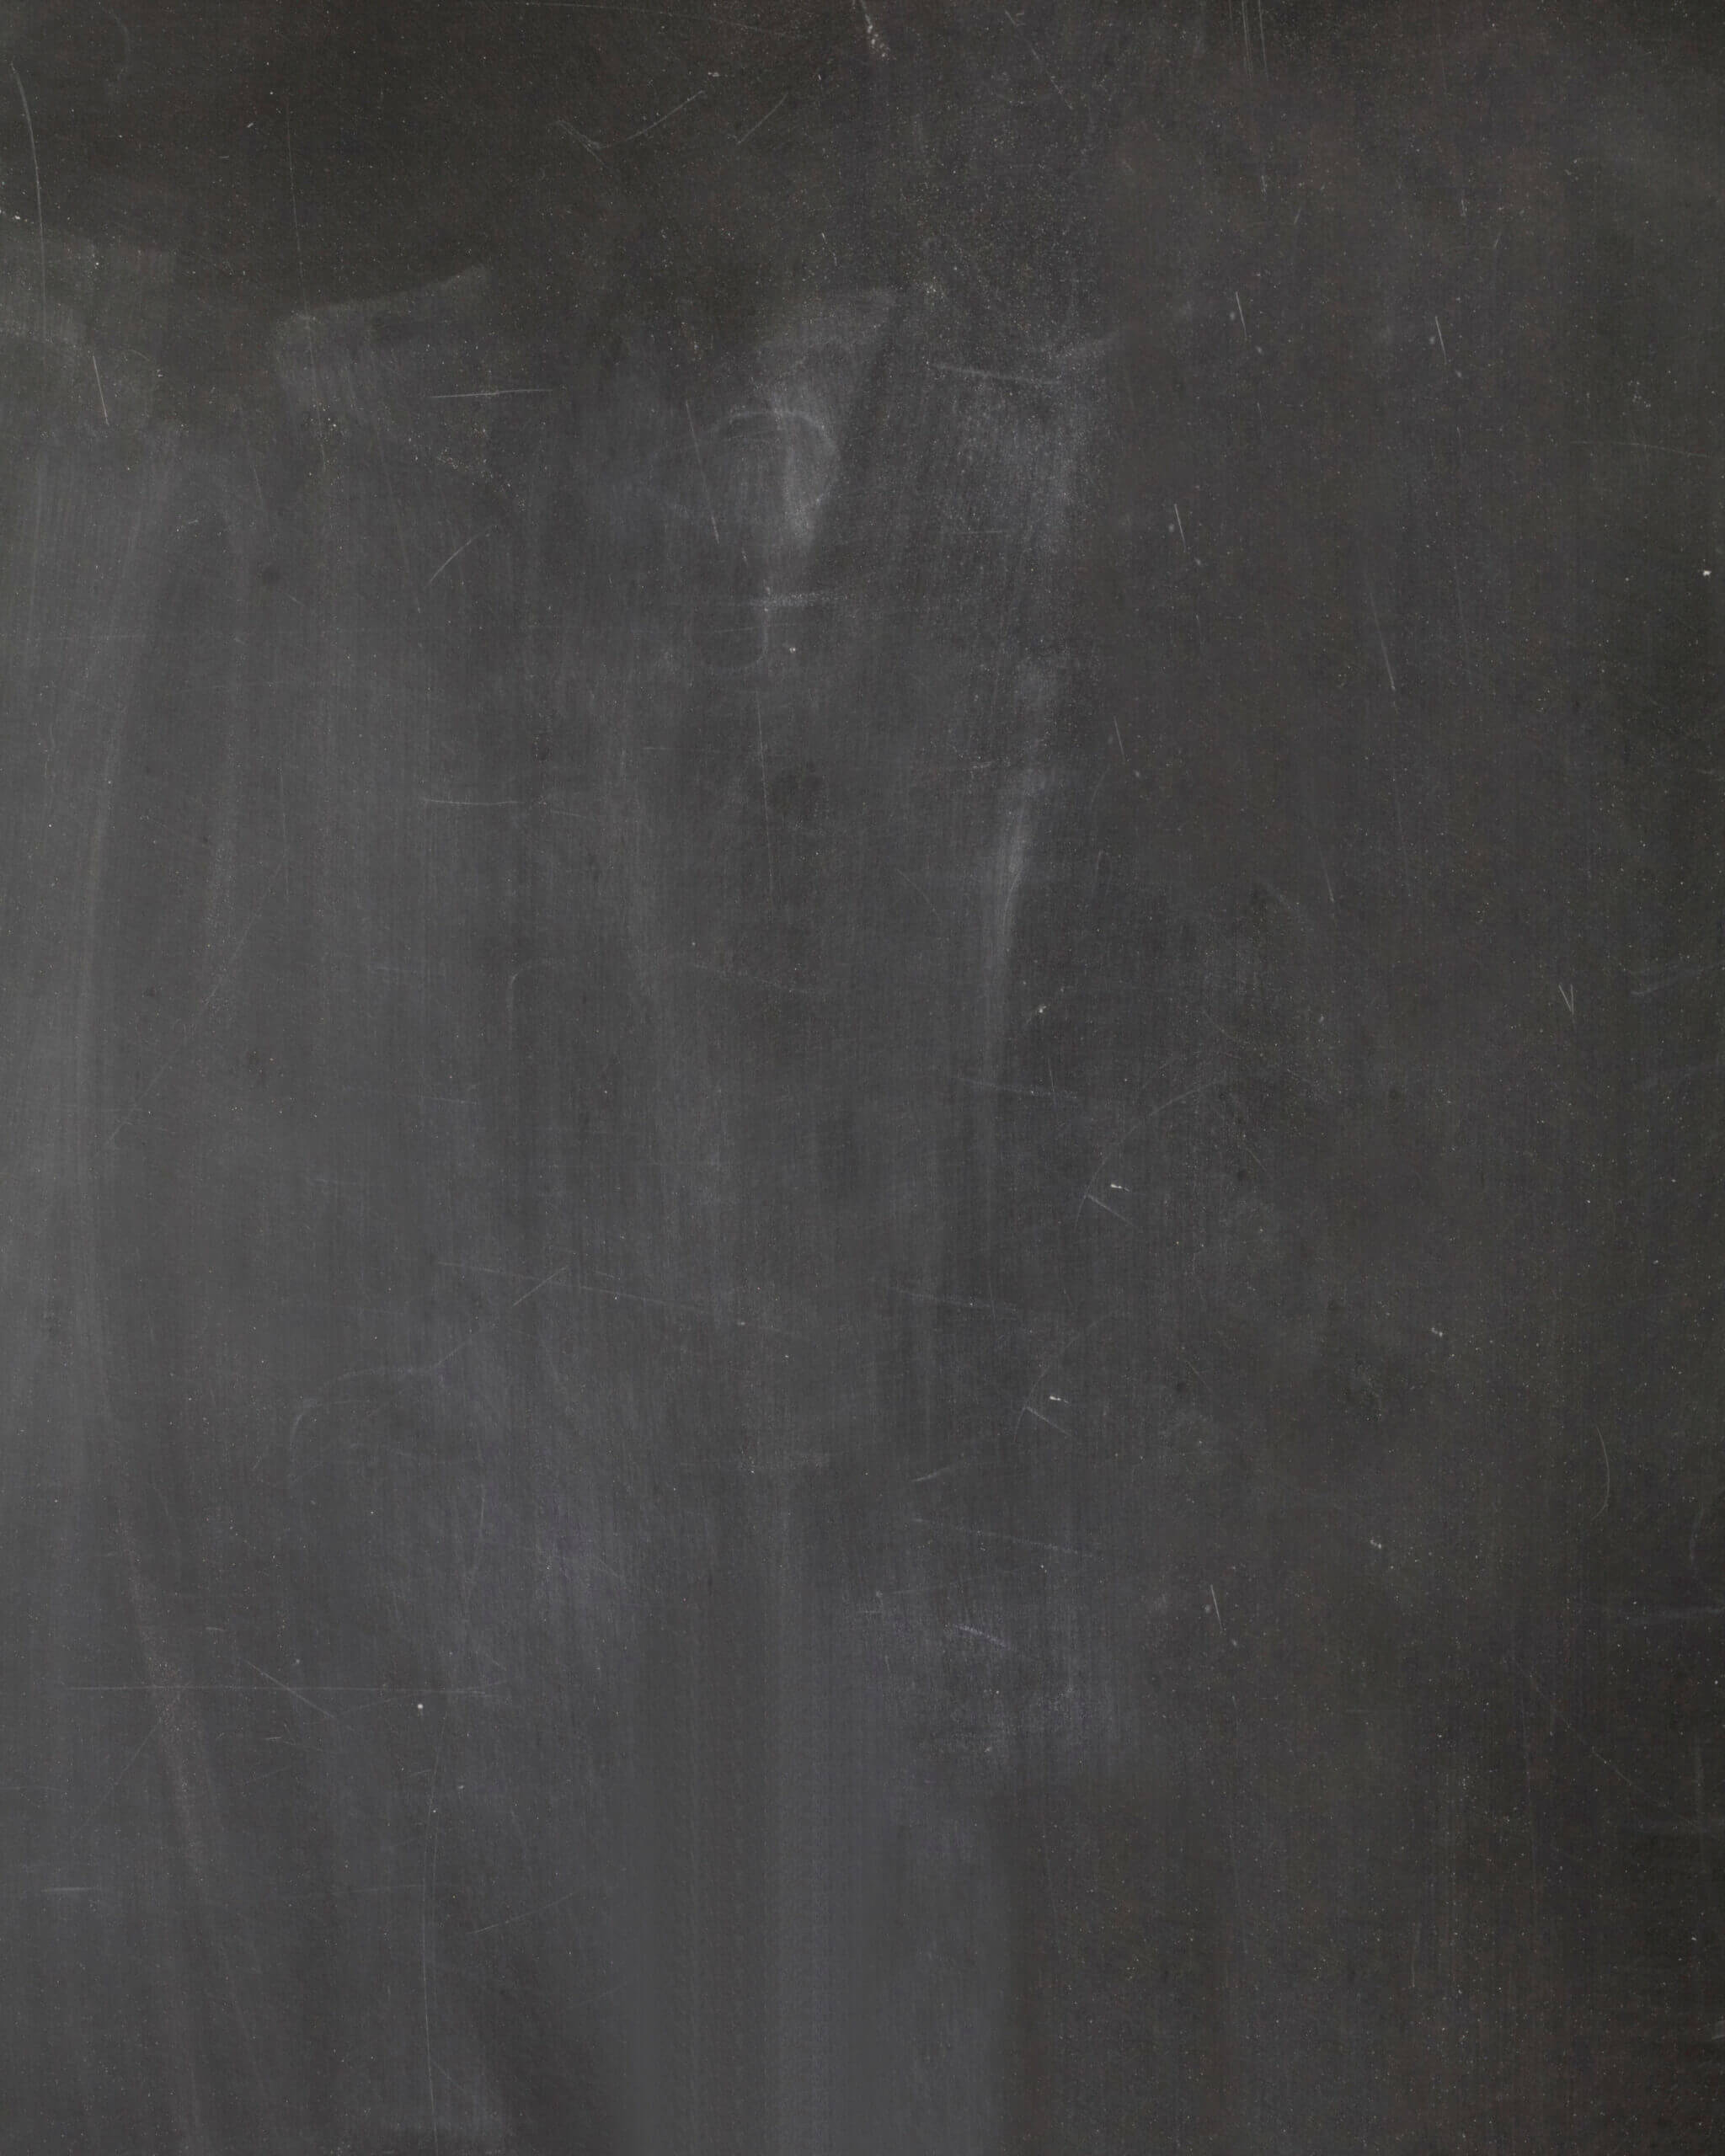 006 Chalkboard Poster Template Free Excellent Ideas 1St Inside Chalkboard Poster Template